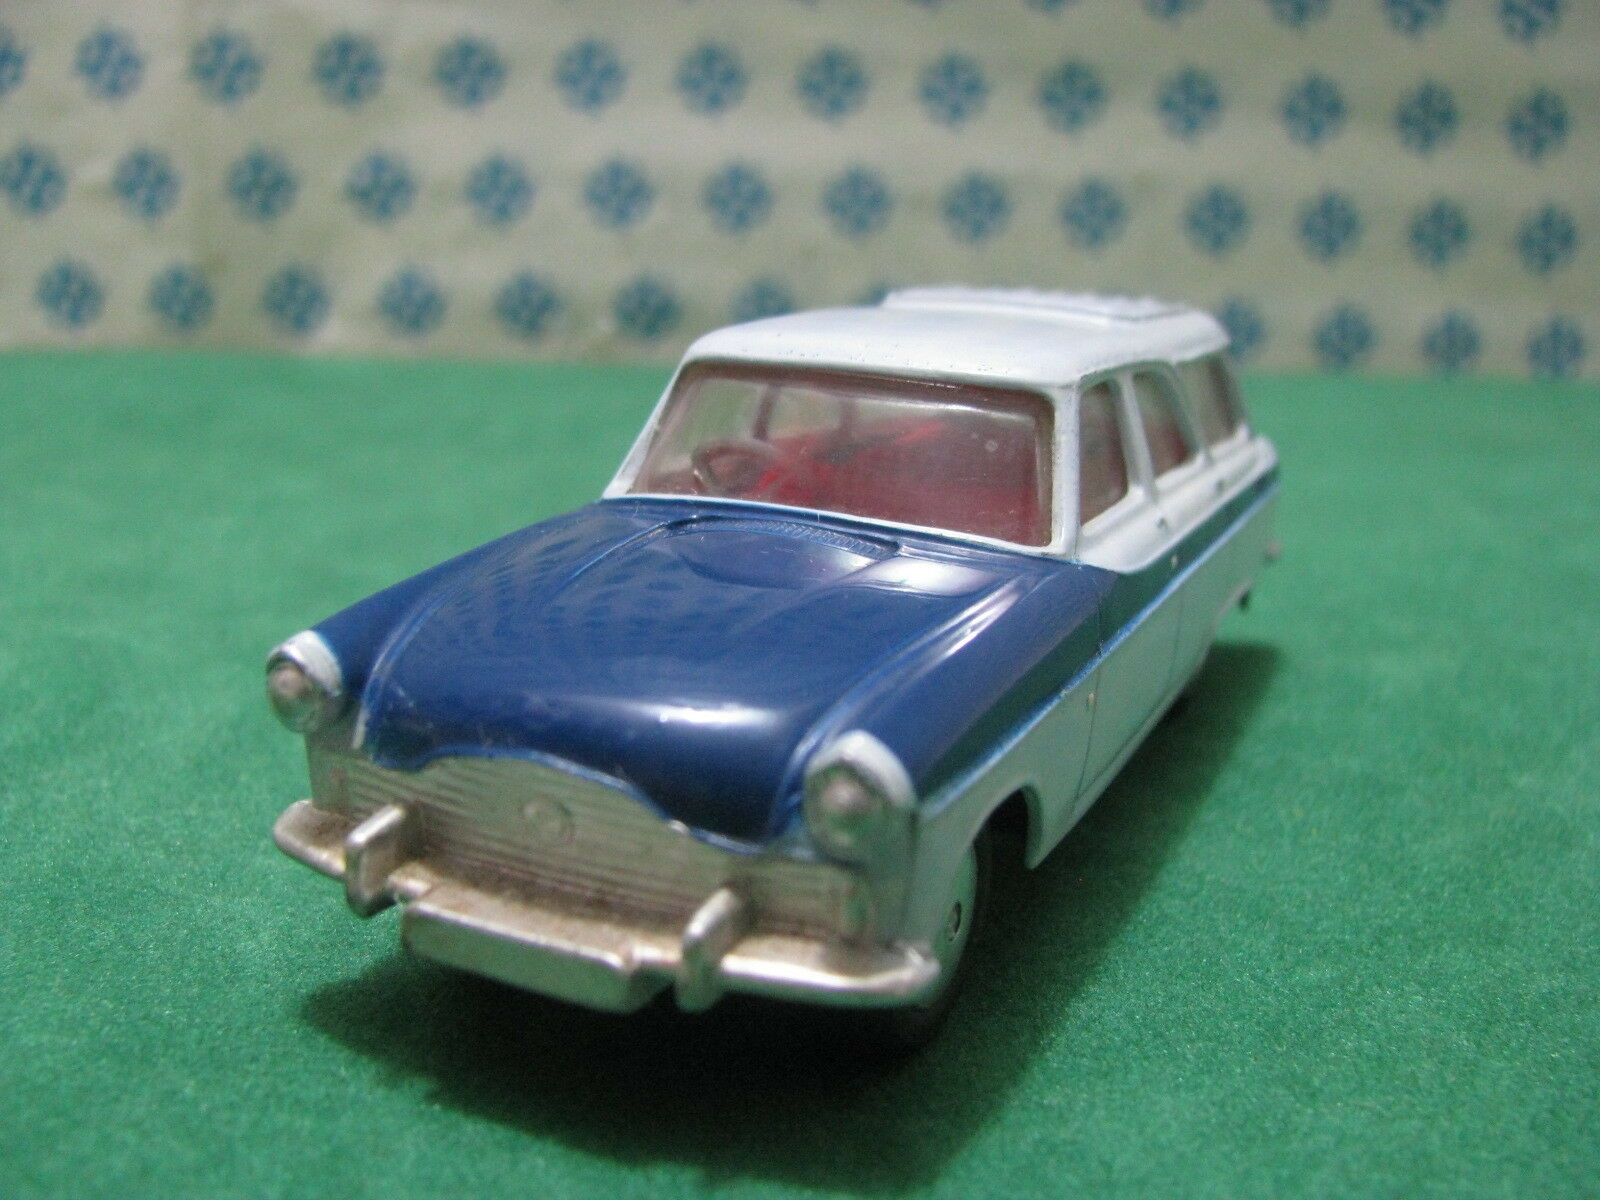 Vintage  -   FORD ZEPHYR  Estate car    - 1 43  Corgi Toys  424